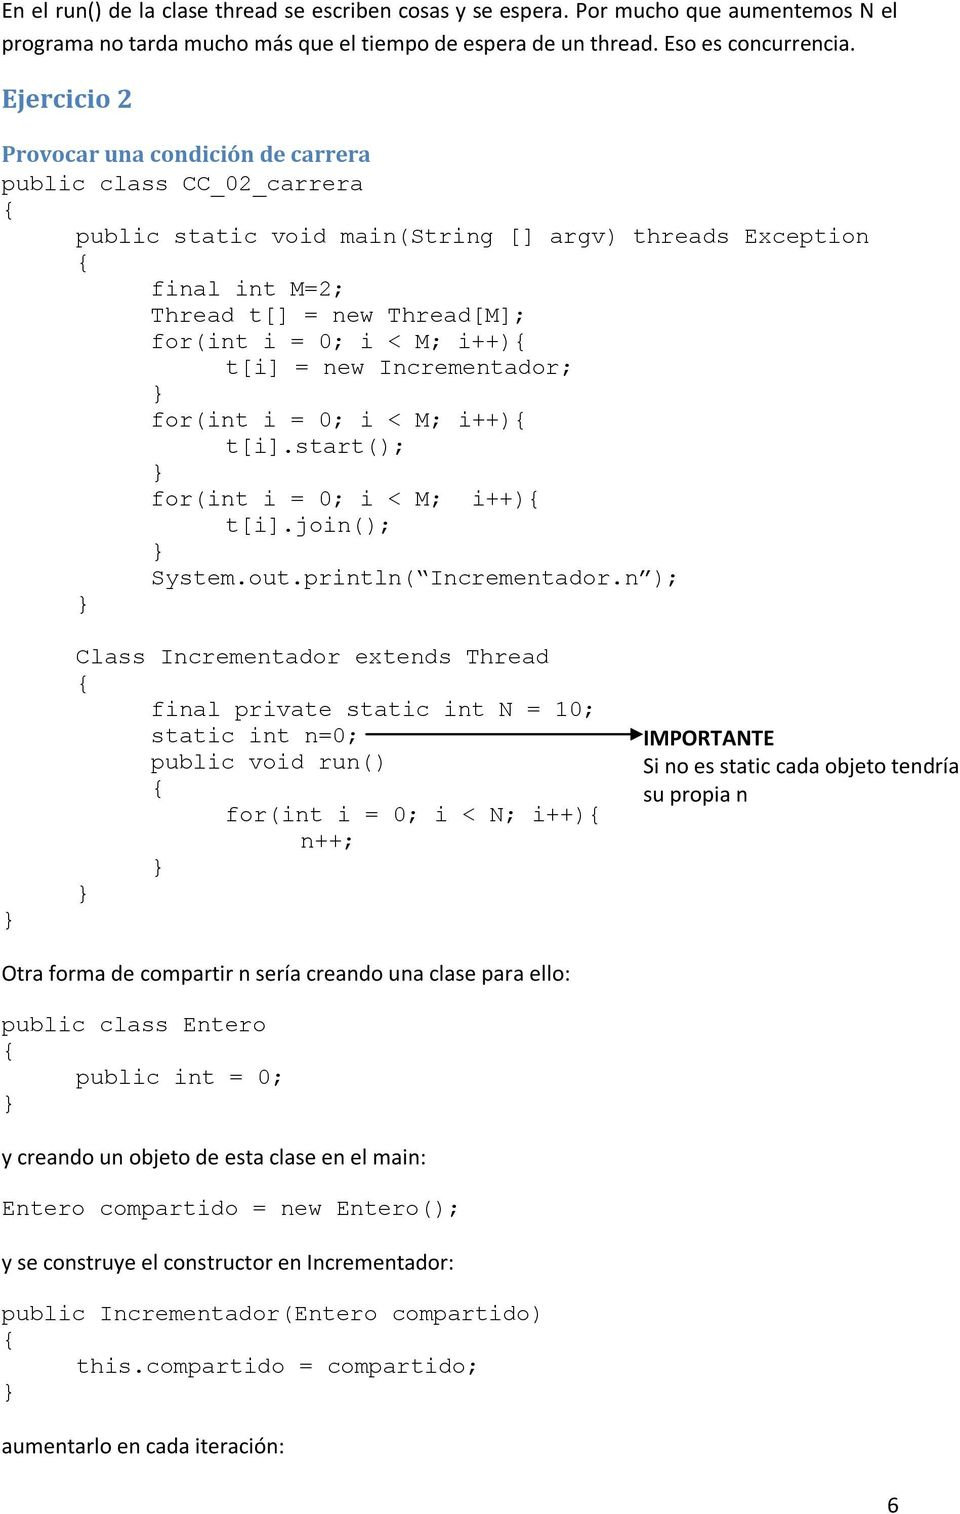 i++){ t[i] = new Incrementador; for(int i = 0; i < M; i++){ t[i].start(); for(int i = 0; i < M; i++){ t[i].join(); System.out.println( Incrementador.